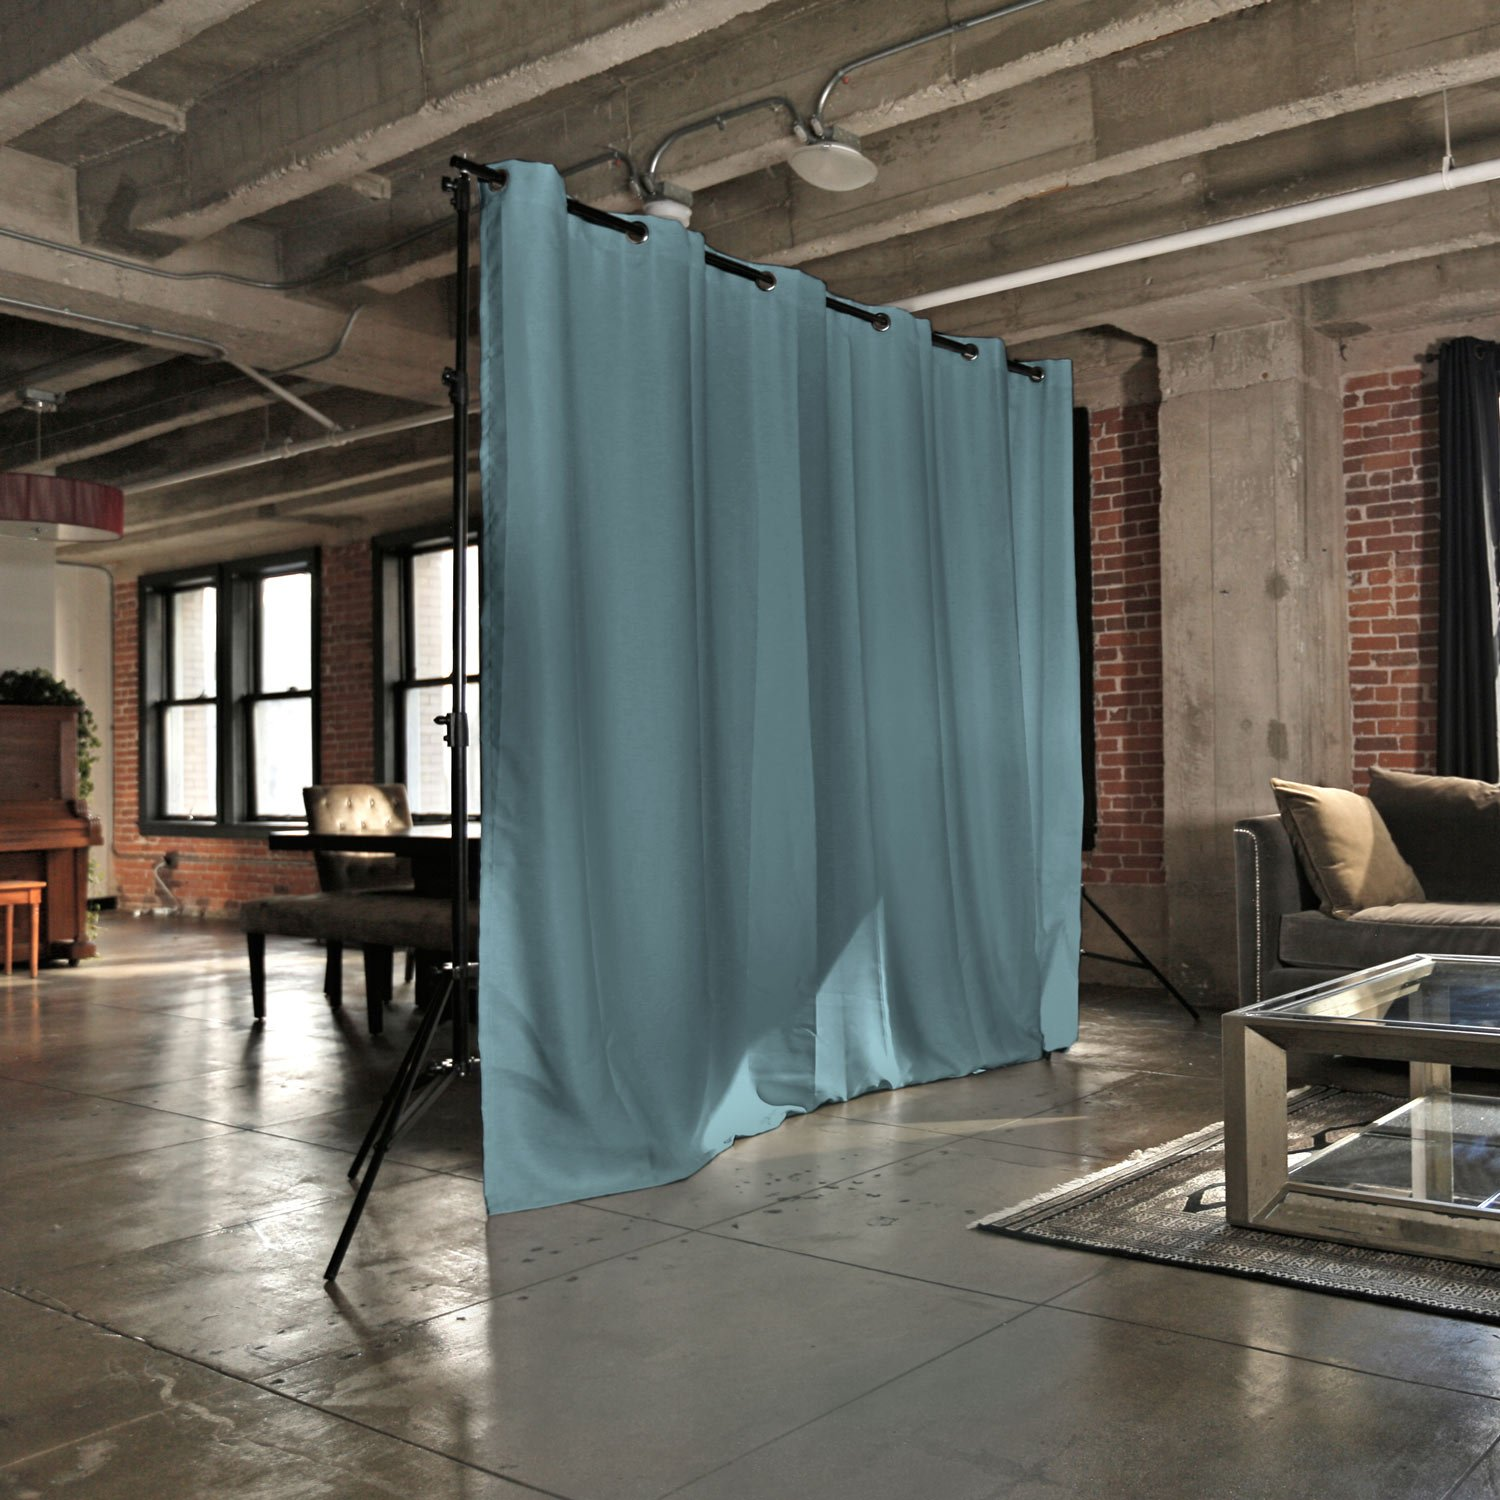 RoomDividersNow Premium Heavyweight Freestanding Room Divider Kit - Medium A, 8ft Tall x 12ft 6in - 25ft Wide (Seafoam)